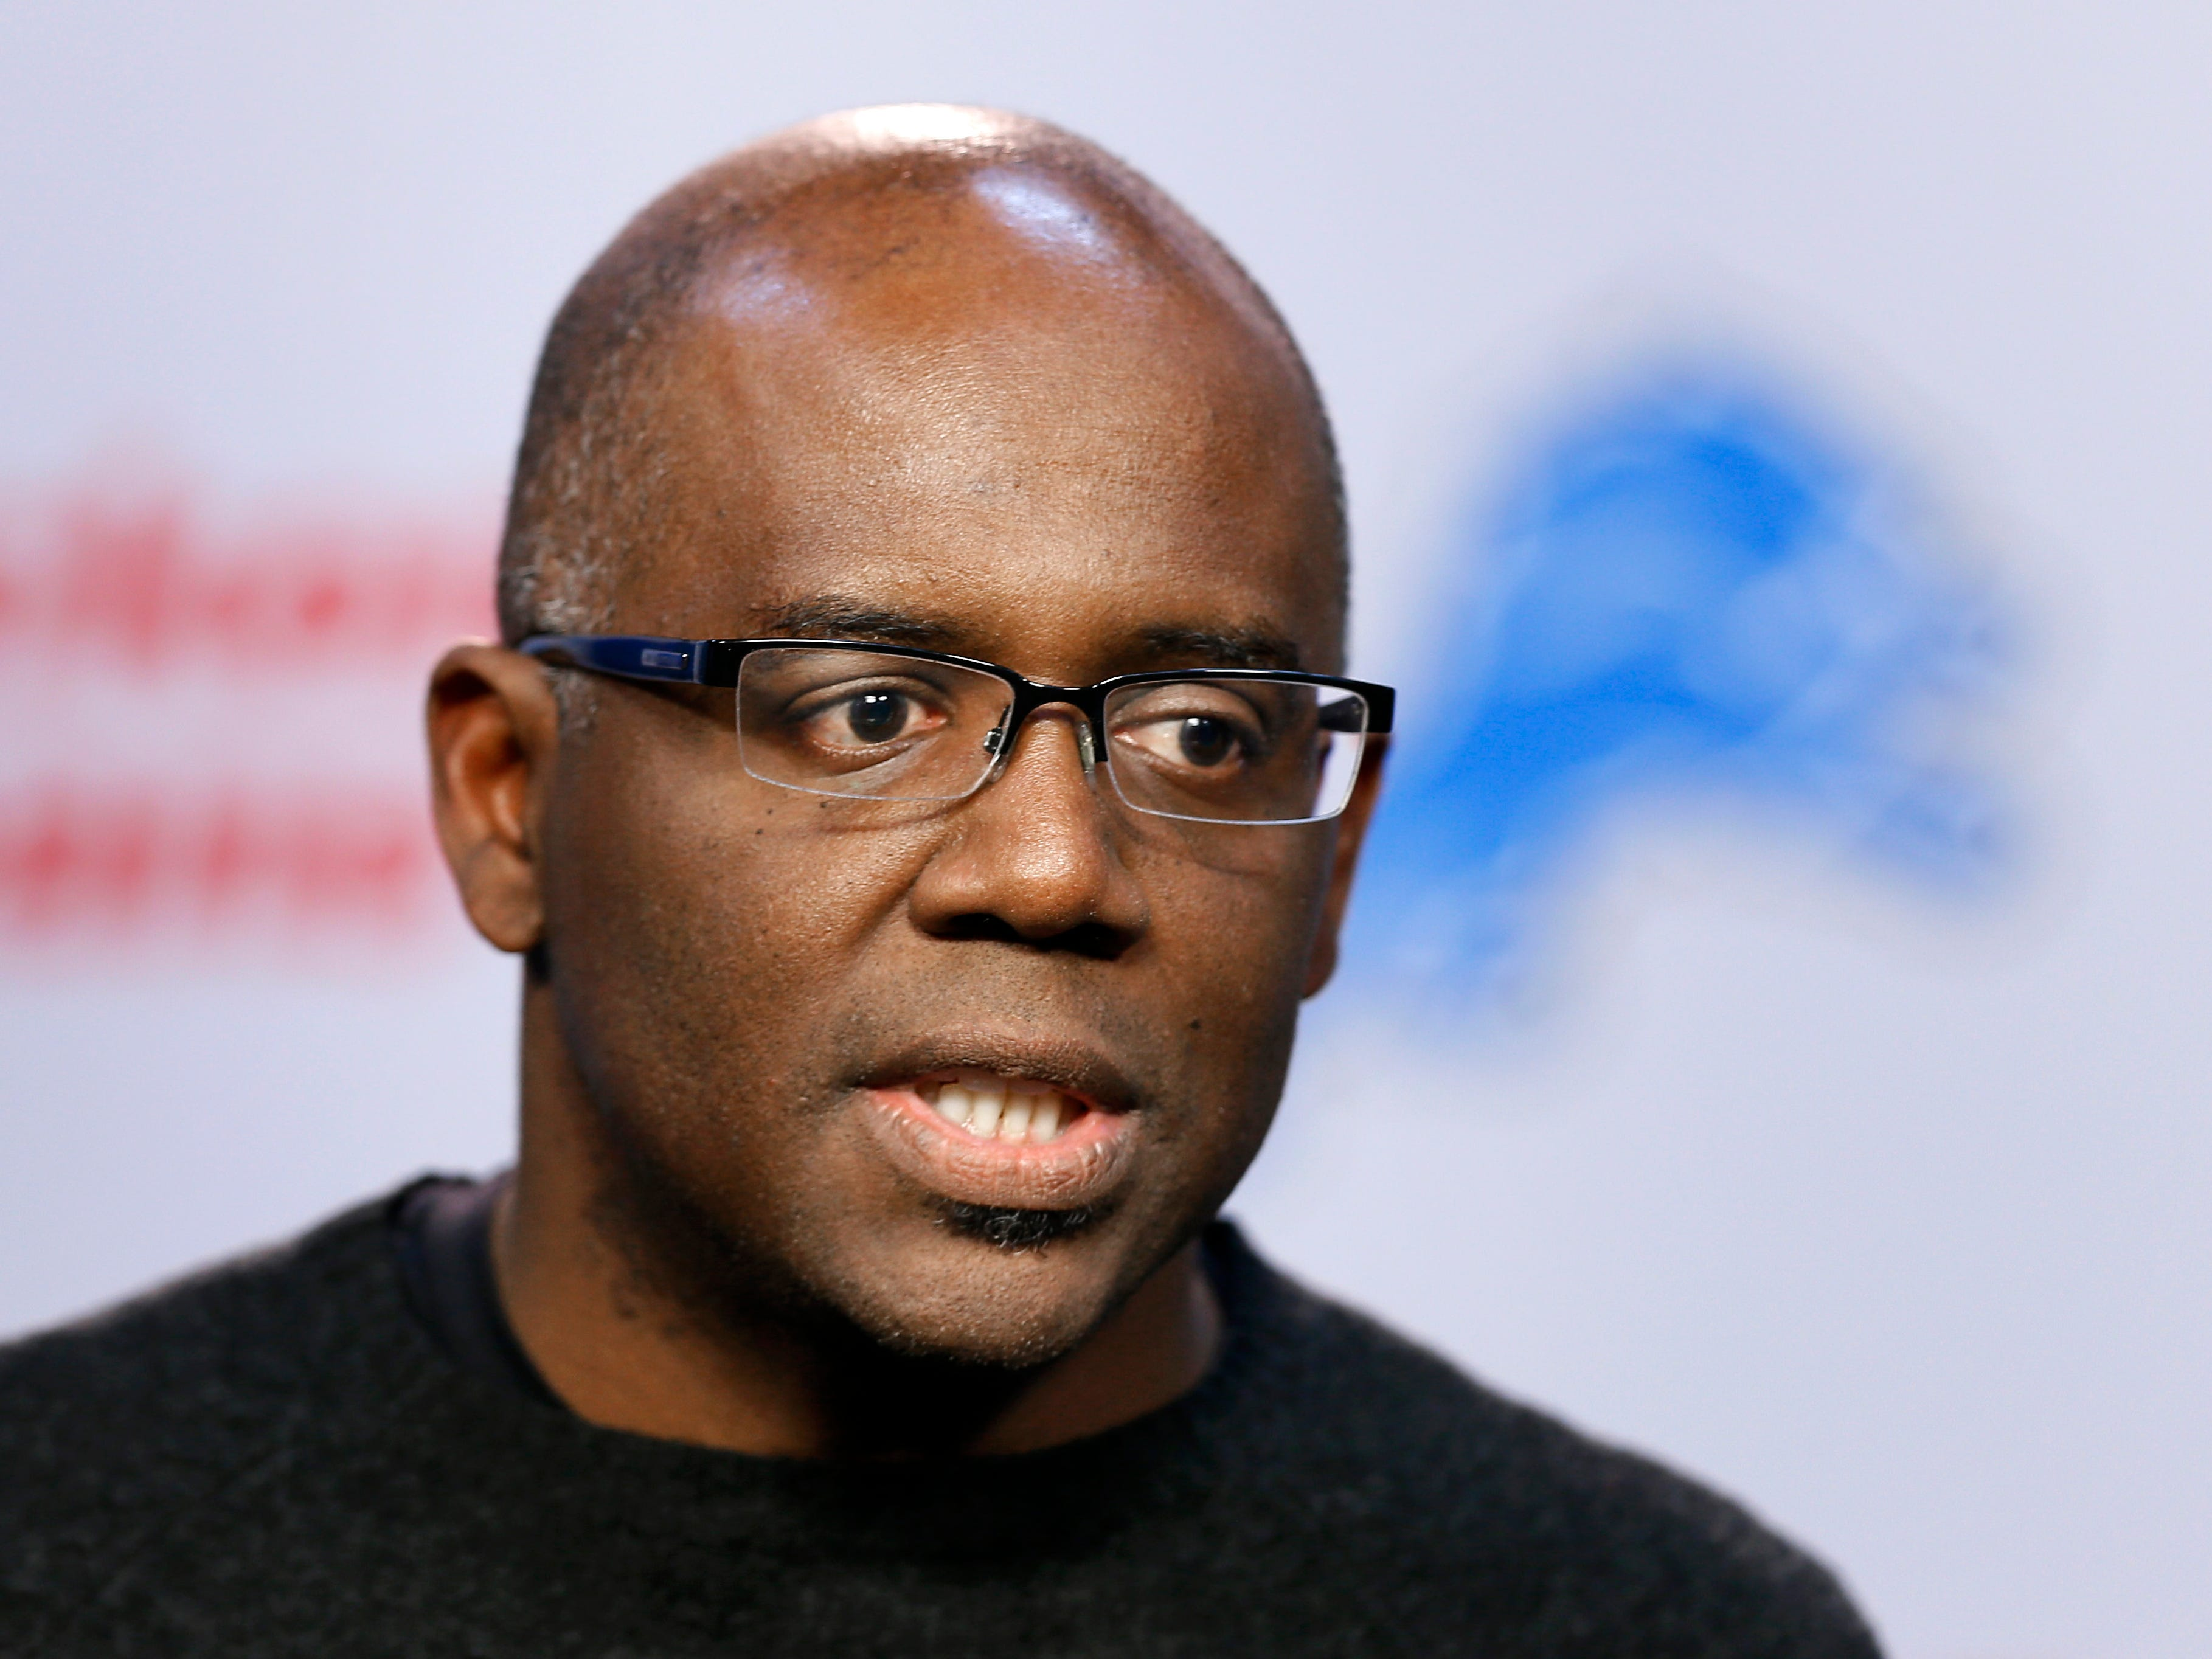 Detroit Lions general manager Martin Mayhew is entering his eighth draft as the team's general manager, and this is just the second time in his tenure that the team's first-round pick is outside the top 20.